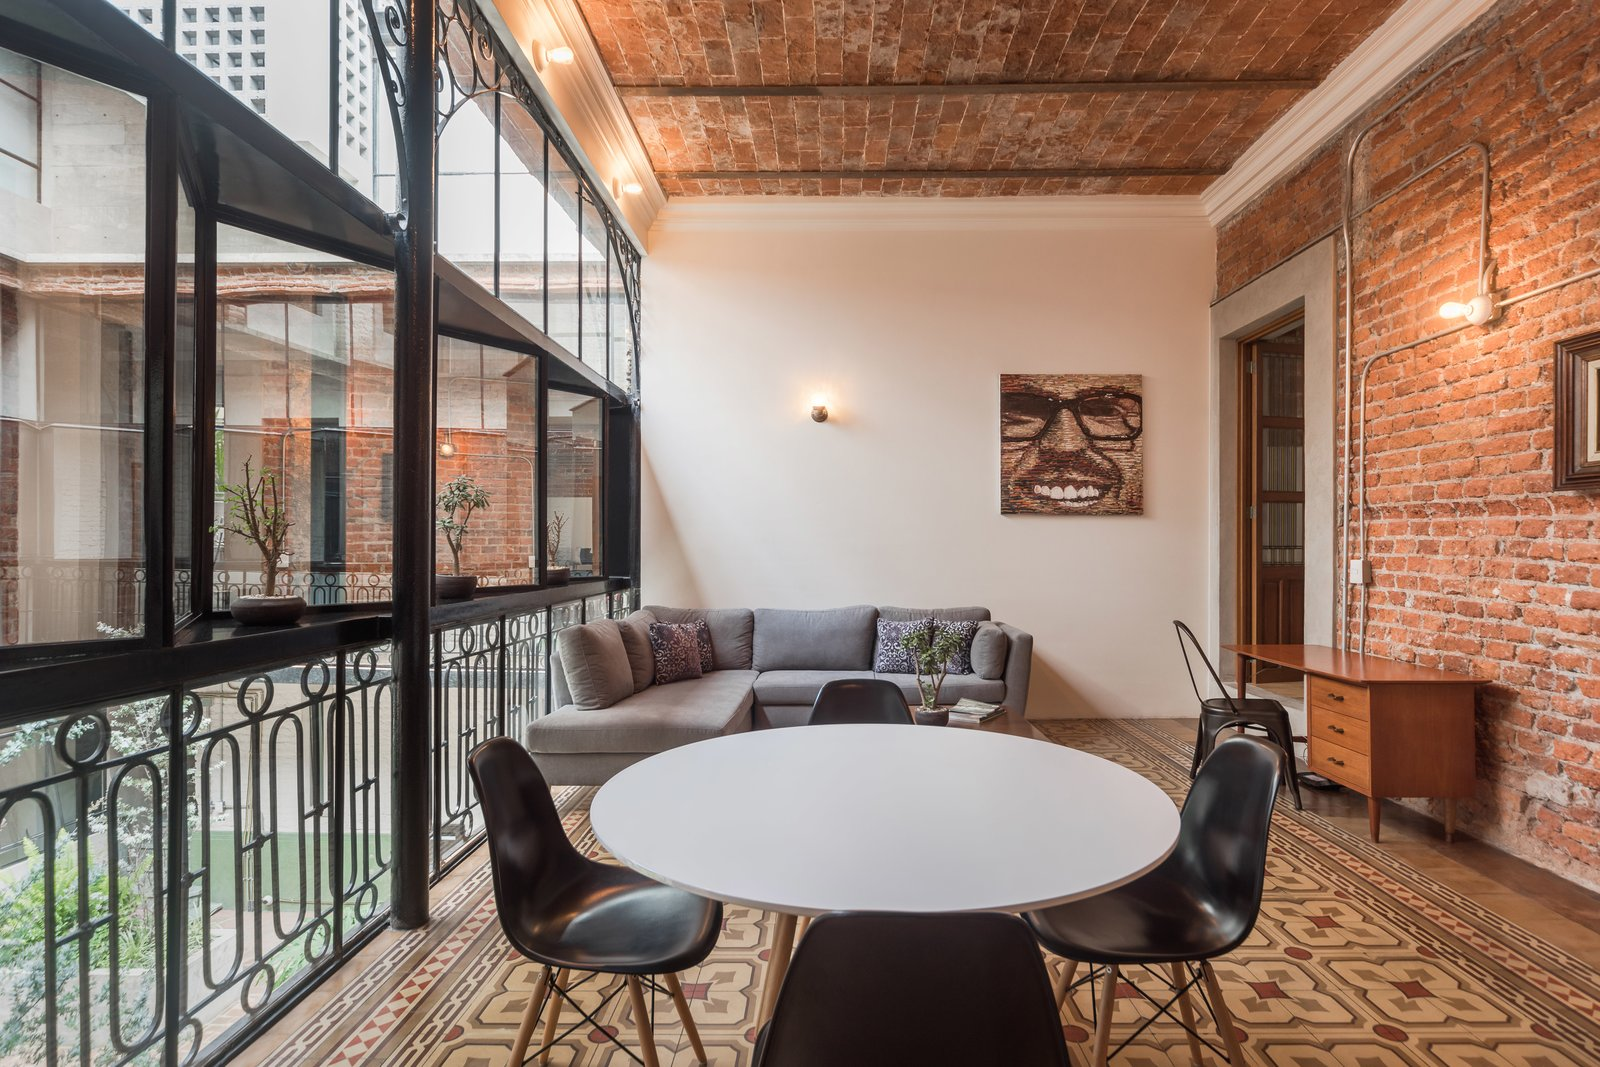 Dining Room, Chair, Ceiling Lighting, Wall Lighting, Table, Ceramic Tile Floor, and Desk Interior apartment  Lirio 7